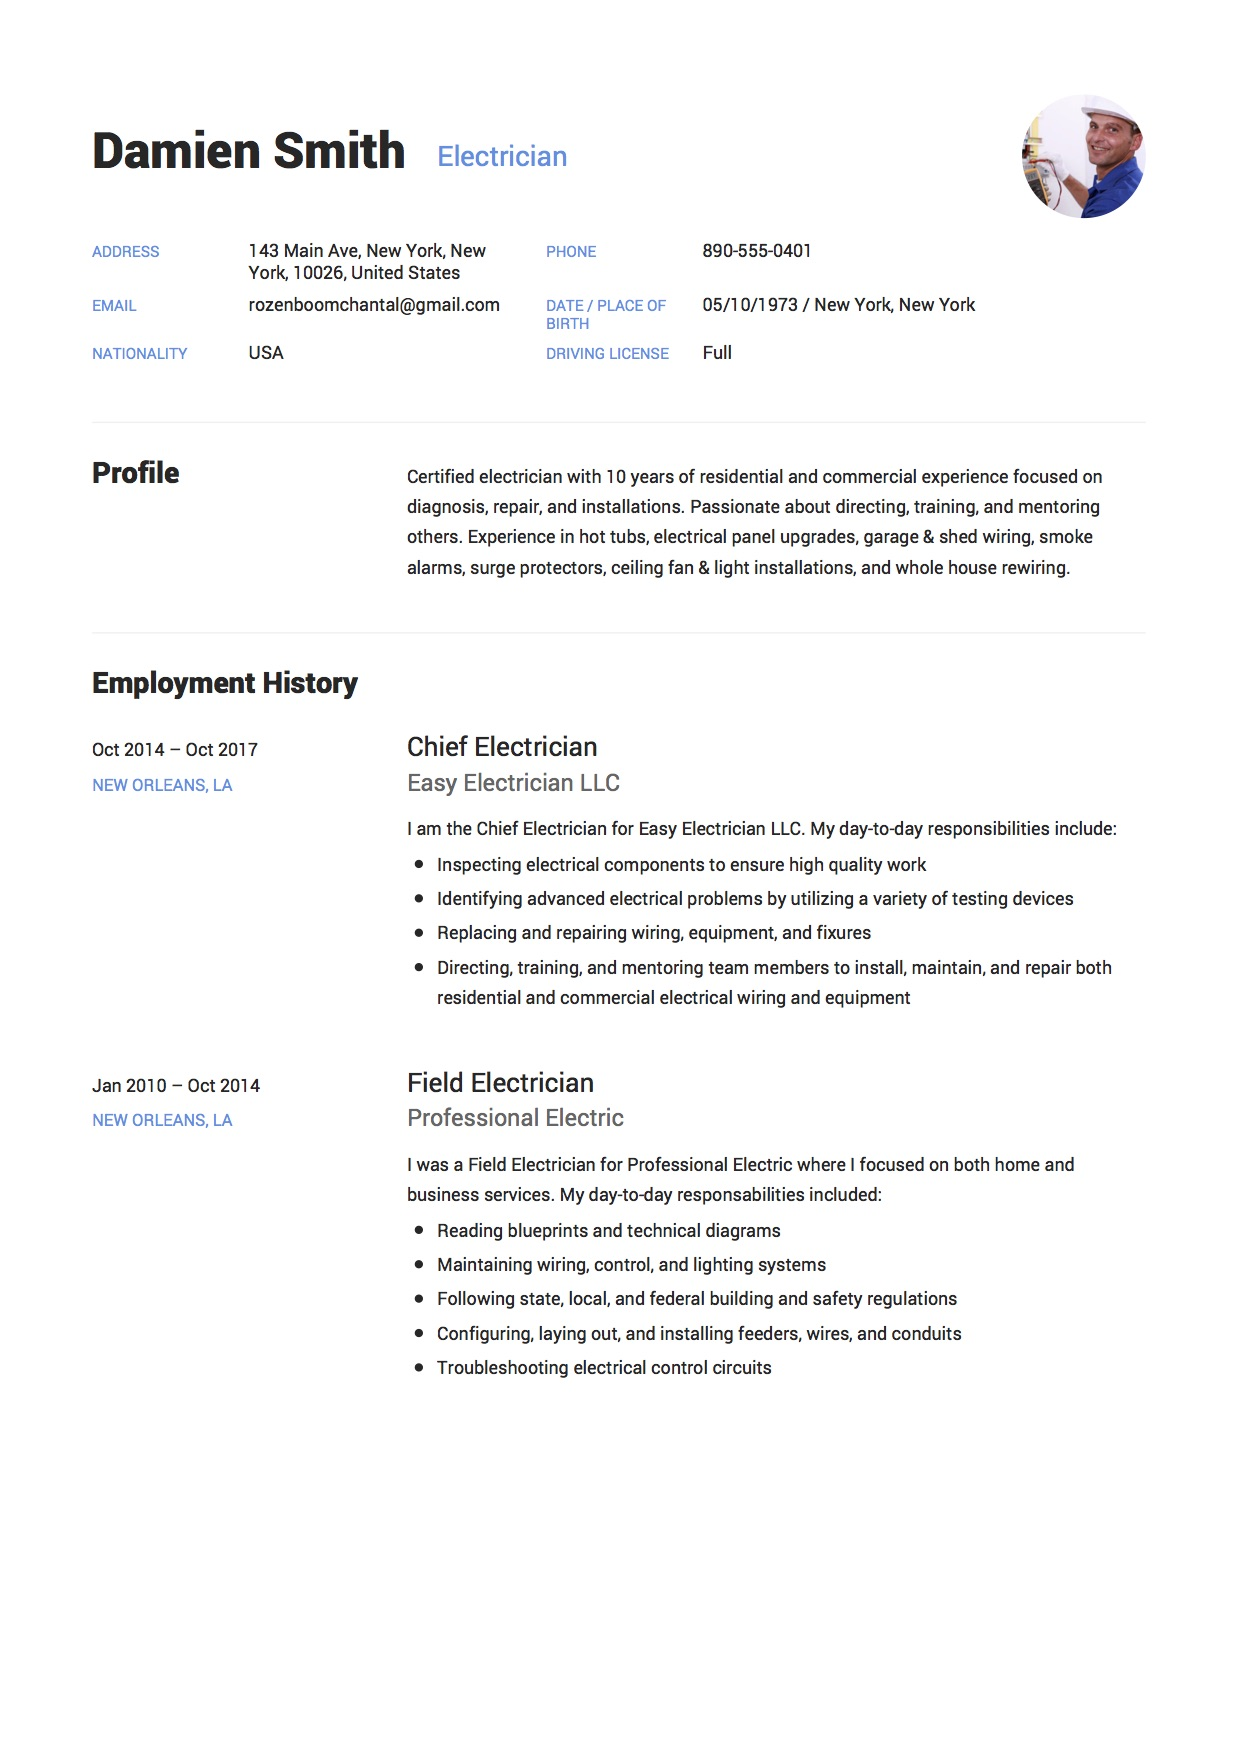 guide electrician resume samples examples pdf word objective statement example serif font Resume Electrician Resume Objective Statement